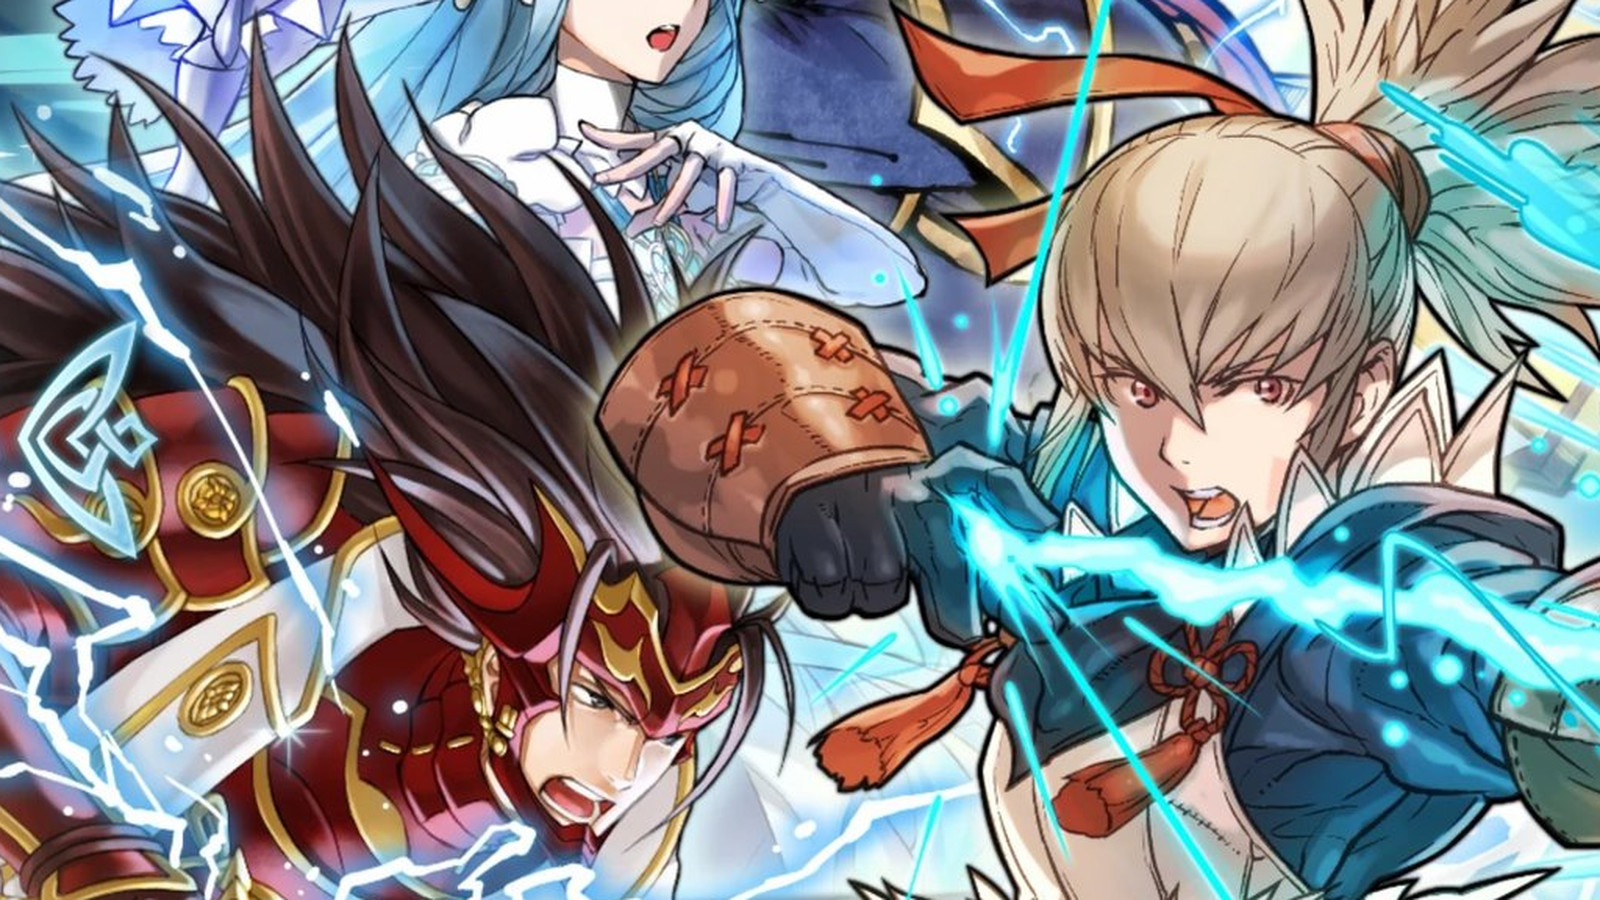 Fire Emblem Heroes just played its fanbase with its best event yet